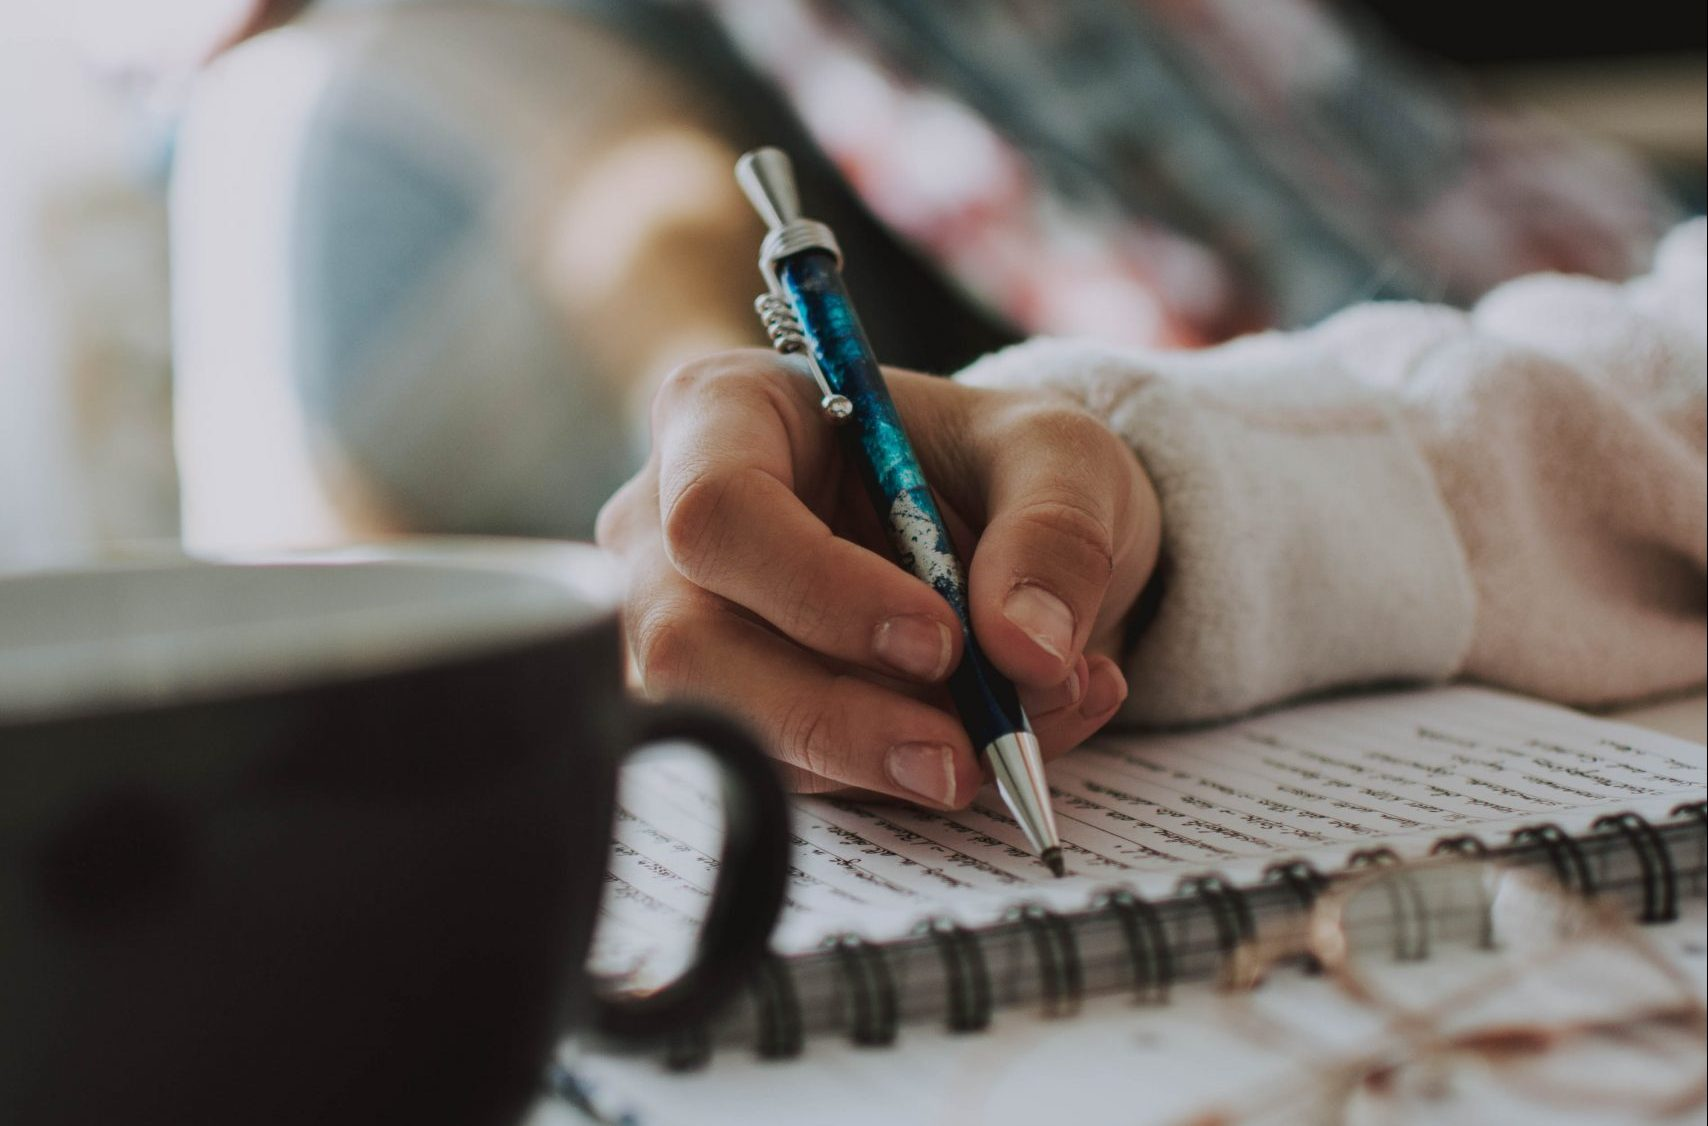 How to edit your own work: tips from a freelance editor